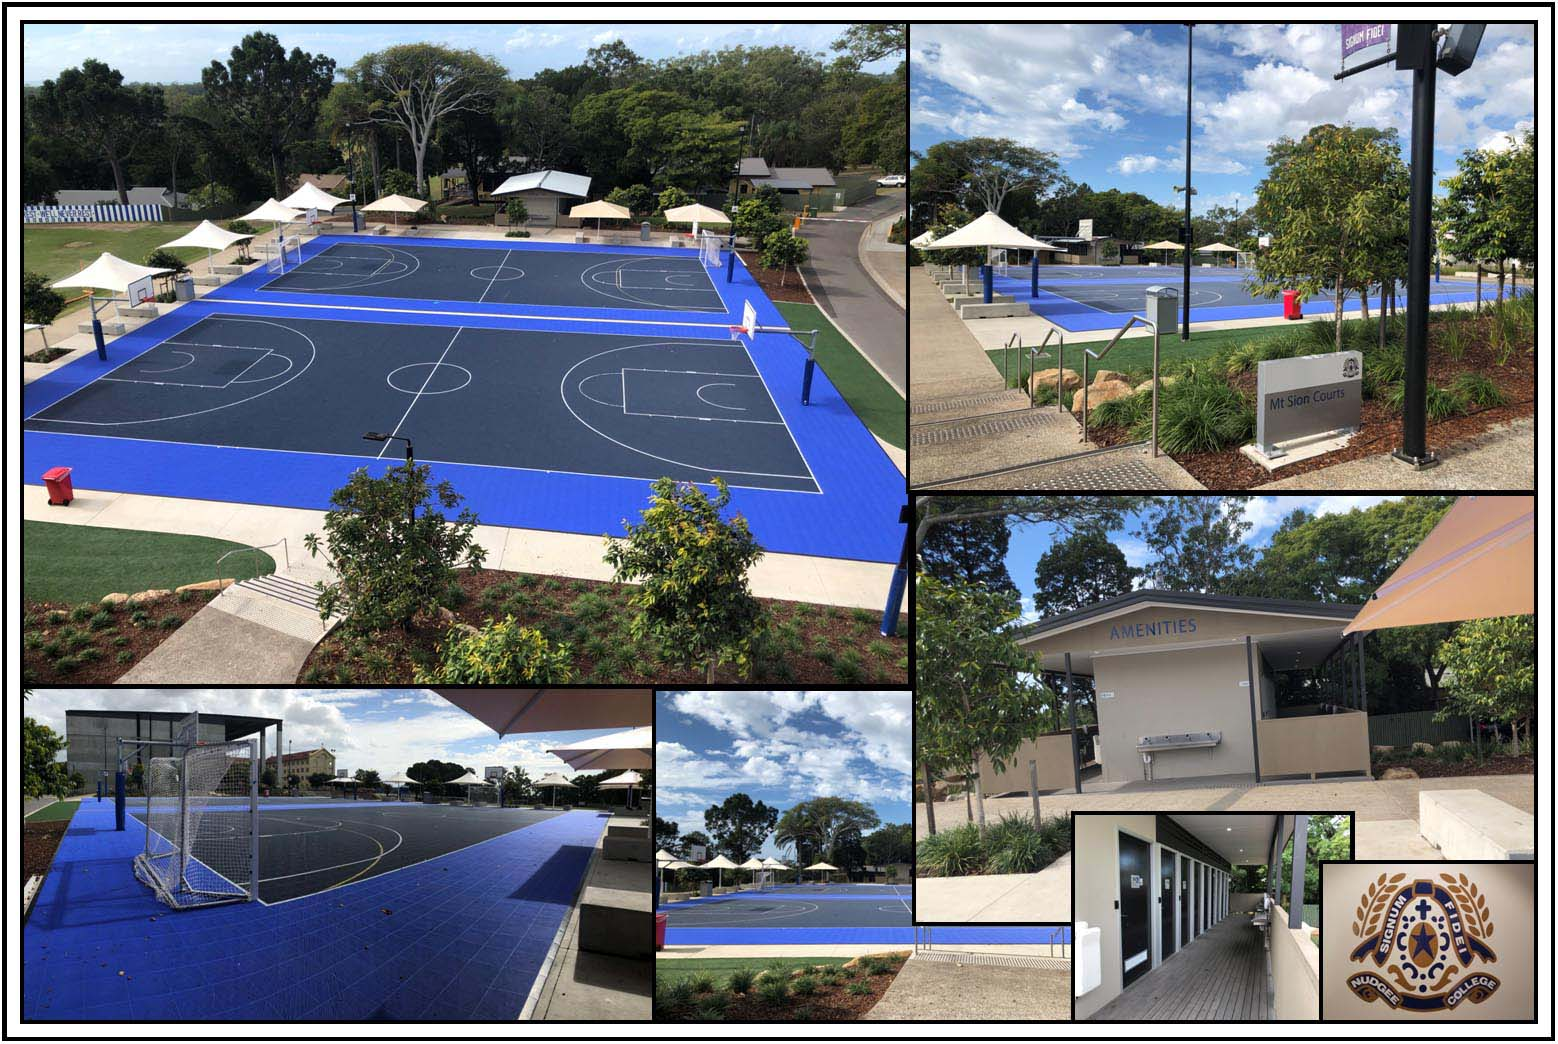 Mt Sion Courts by Kleva Konstructions.